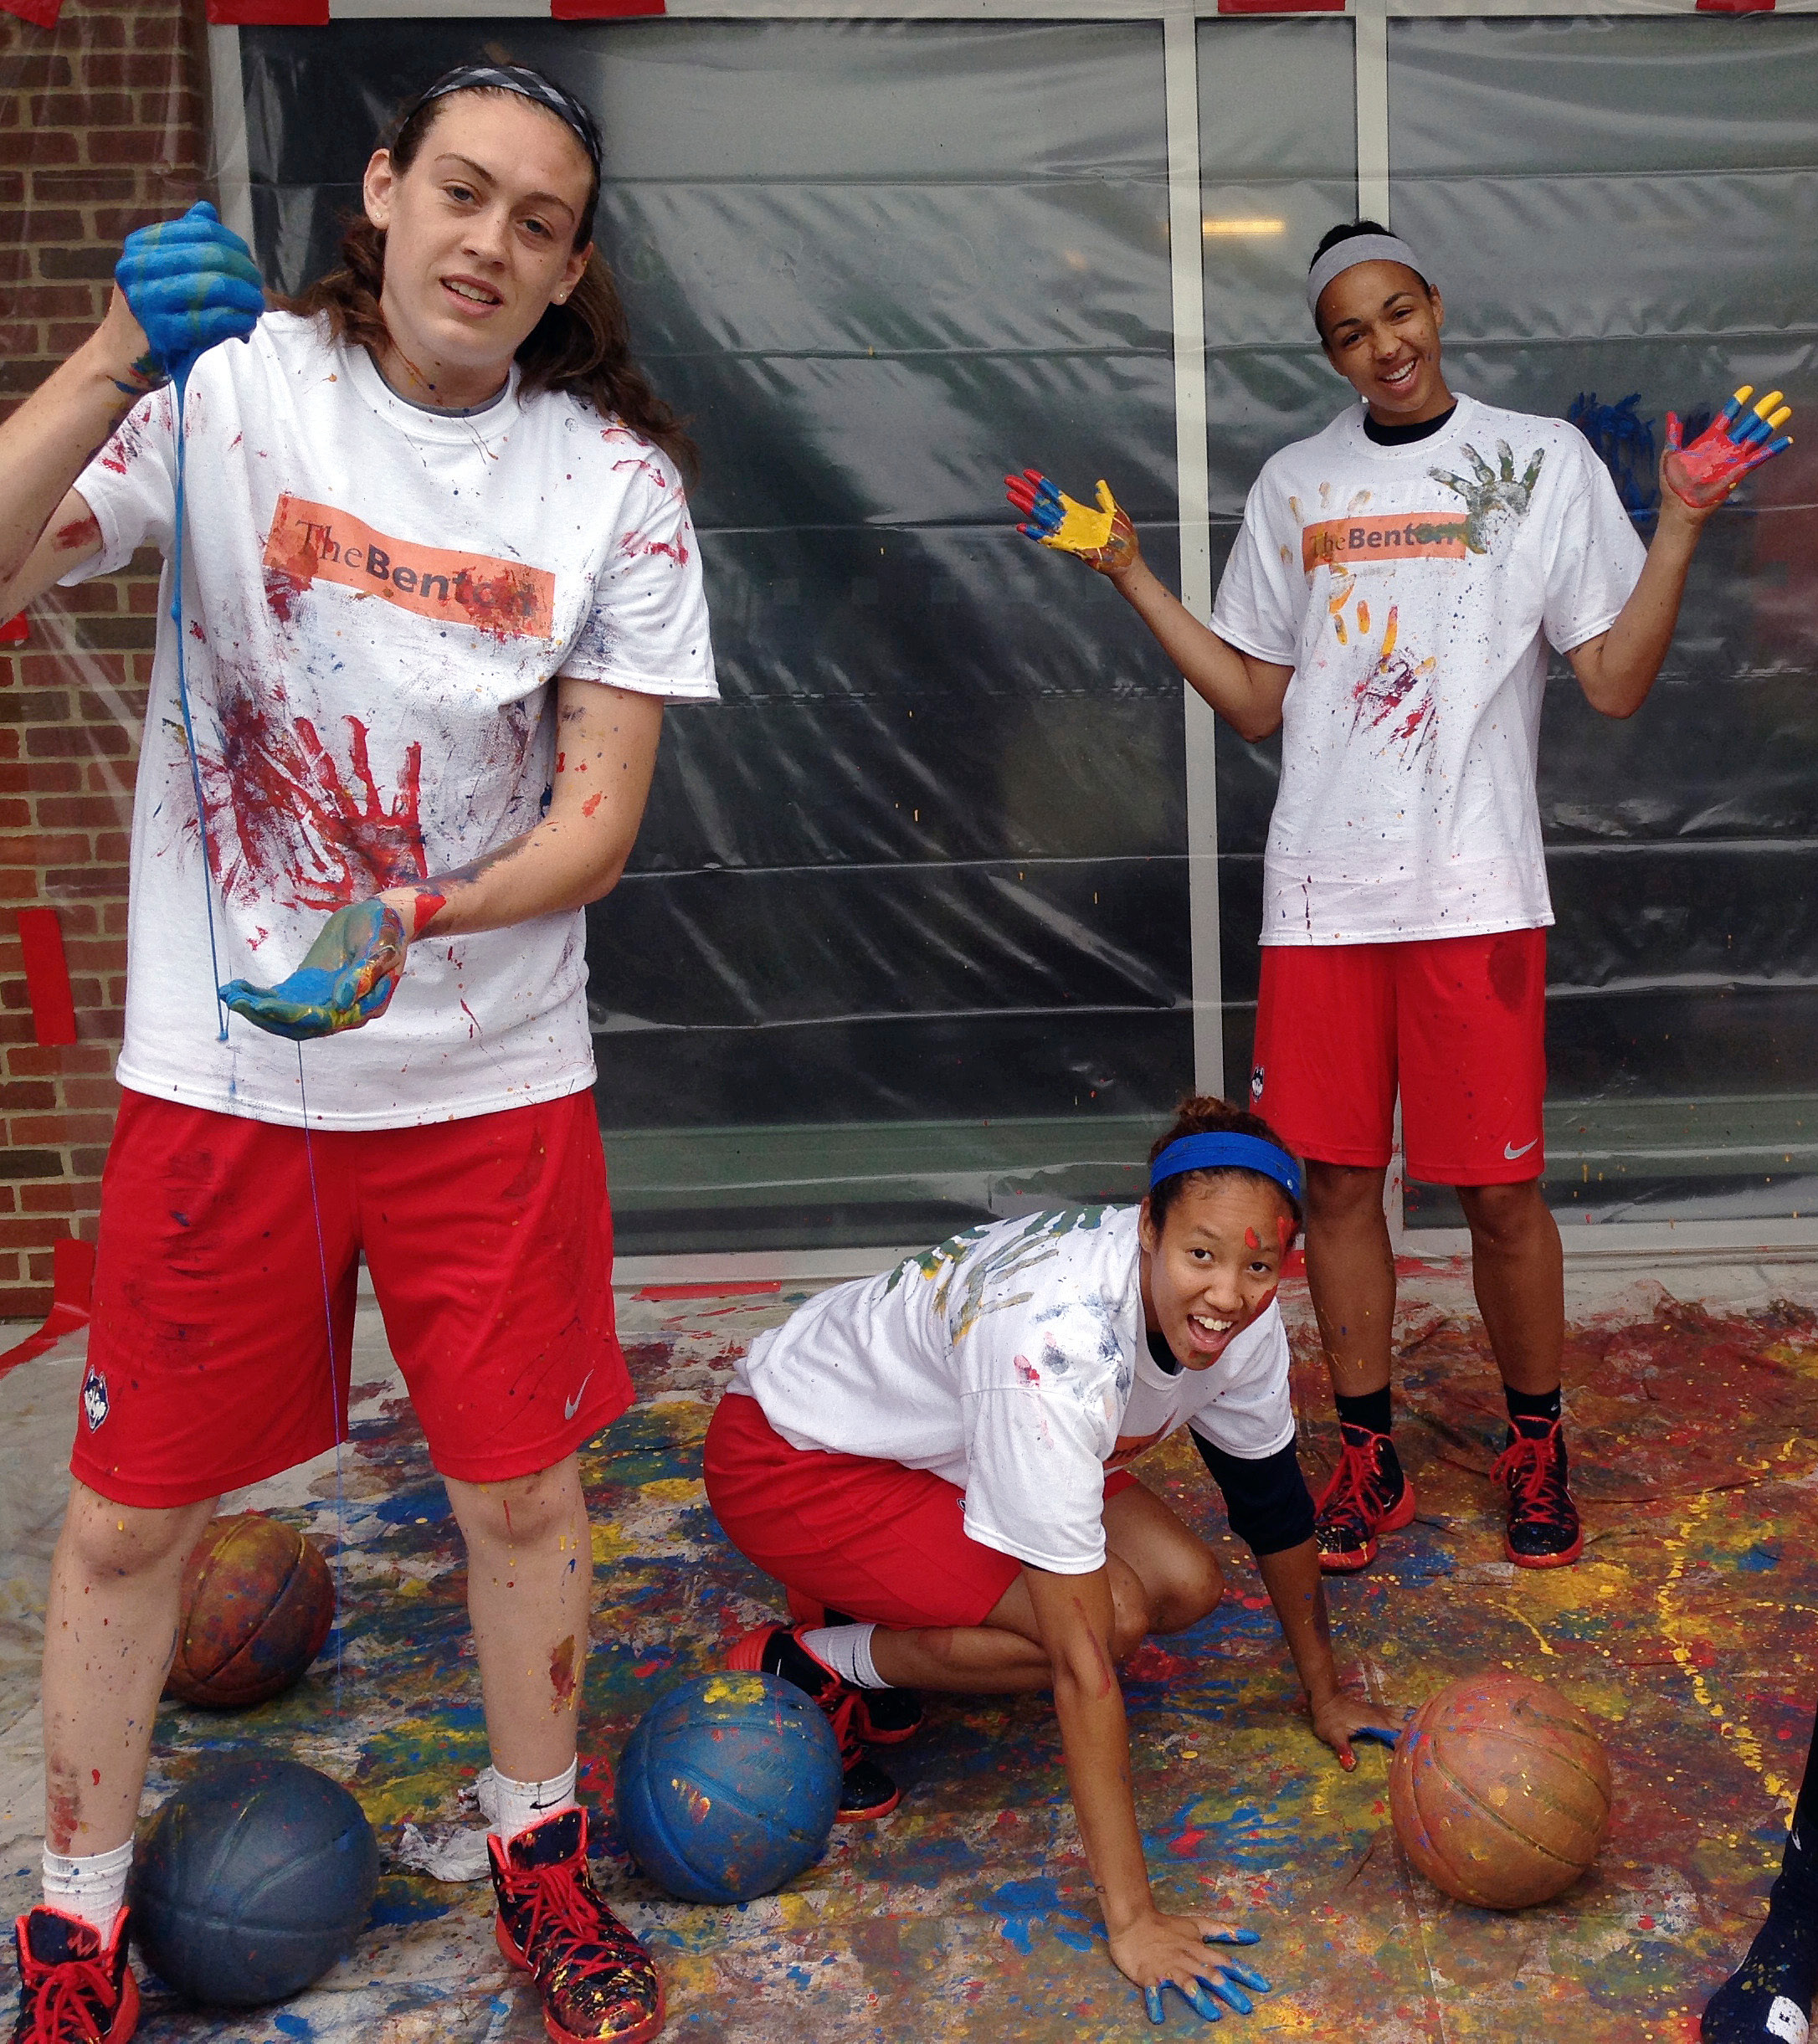 In this June 12, 2014 photo released by the University of Connecticut, UConn women basketball players Breanna Stewart, left, Saniya Chong, kneeling, and Kiah Stokes, right, pose after dribbling paint-covered basketballs on a canvas to create a painting on campus in Storrs, Conn. The schools William Benton Museum of Art will open an exhibit on Jan. 23, 2015, titled In the Paint: Basketball in Contemporary Art, which will feature 22 basketball-related paintings, photographs and sculptures, including this painting.  (AP Photo/University of Connecticut, Kevin DeMille)